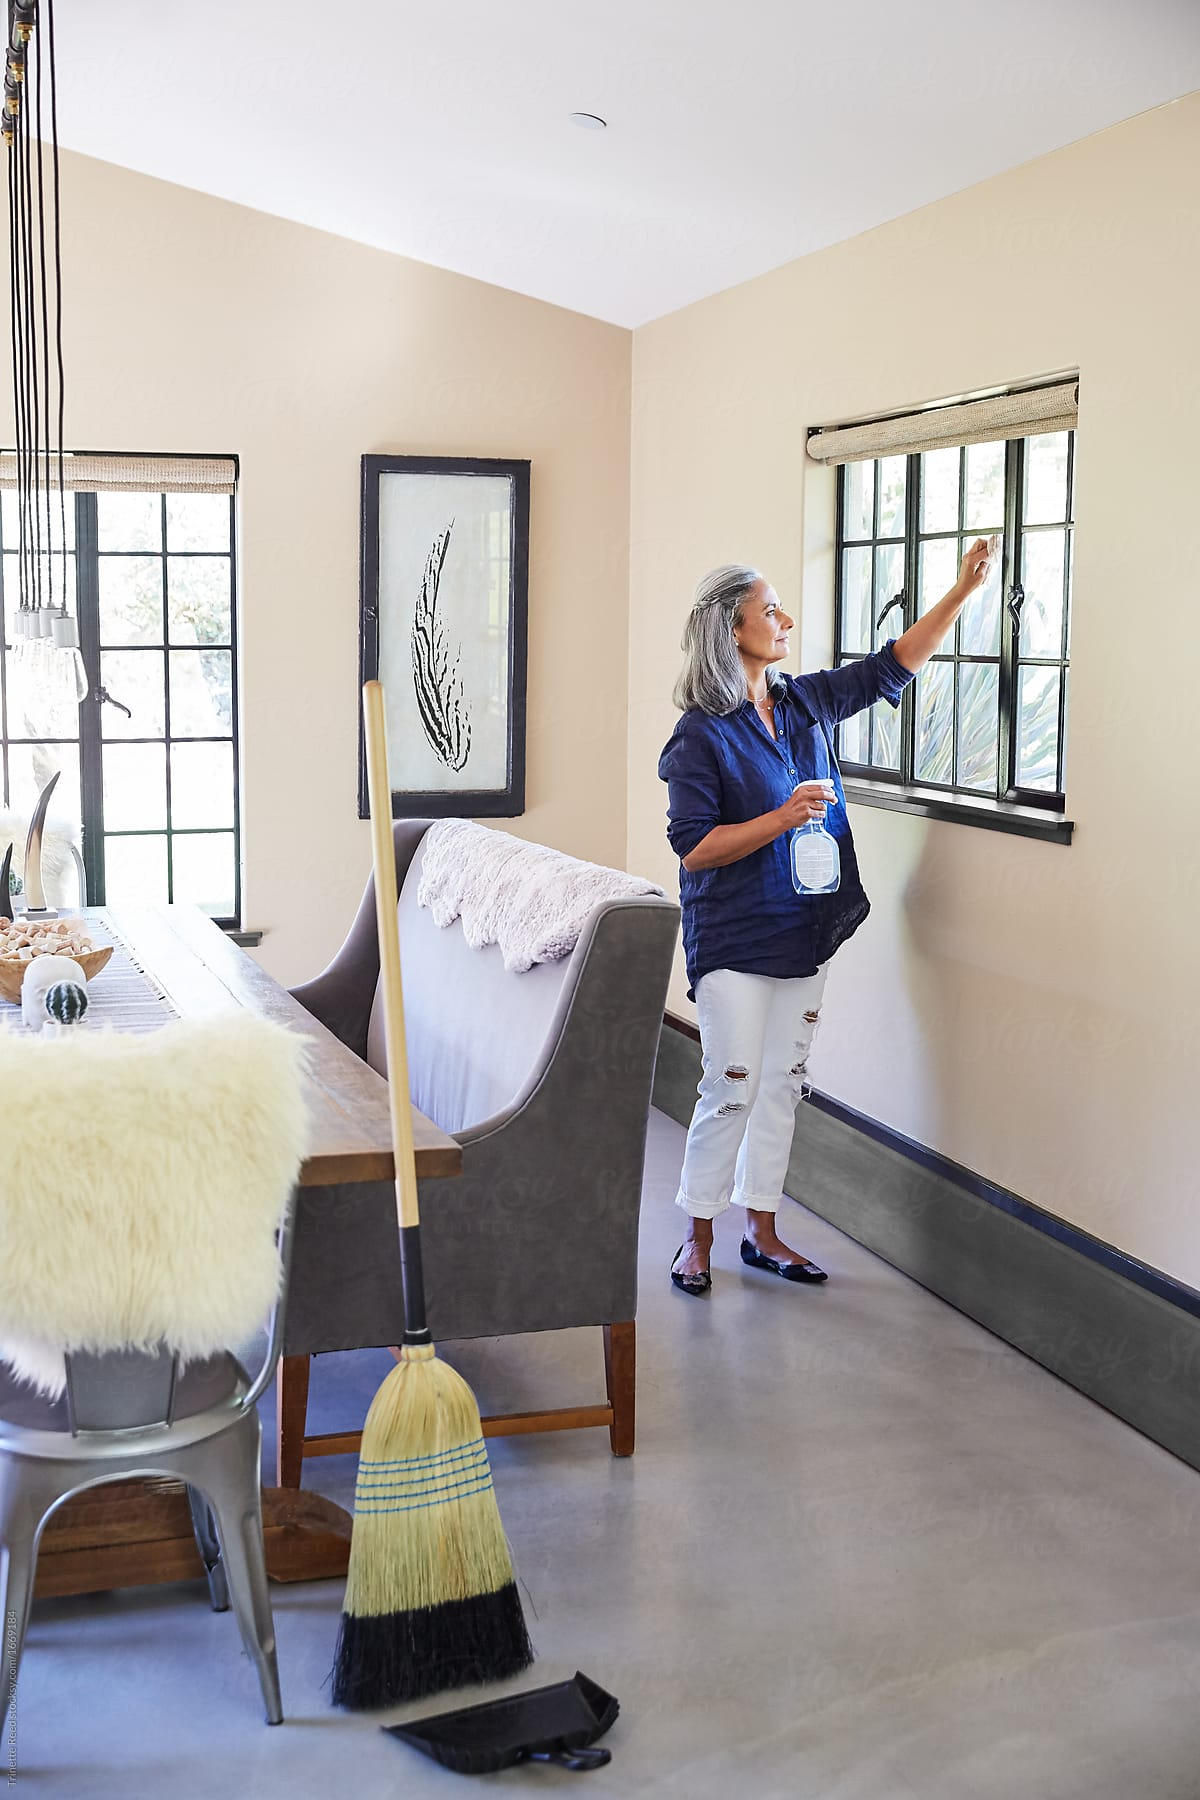 Mature Woman Cleaning Windows At Home With Non Toxic Cleaner By